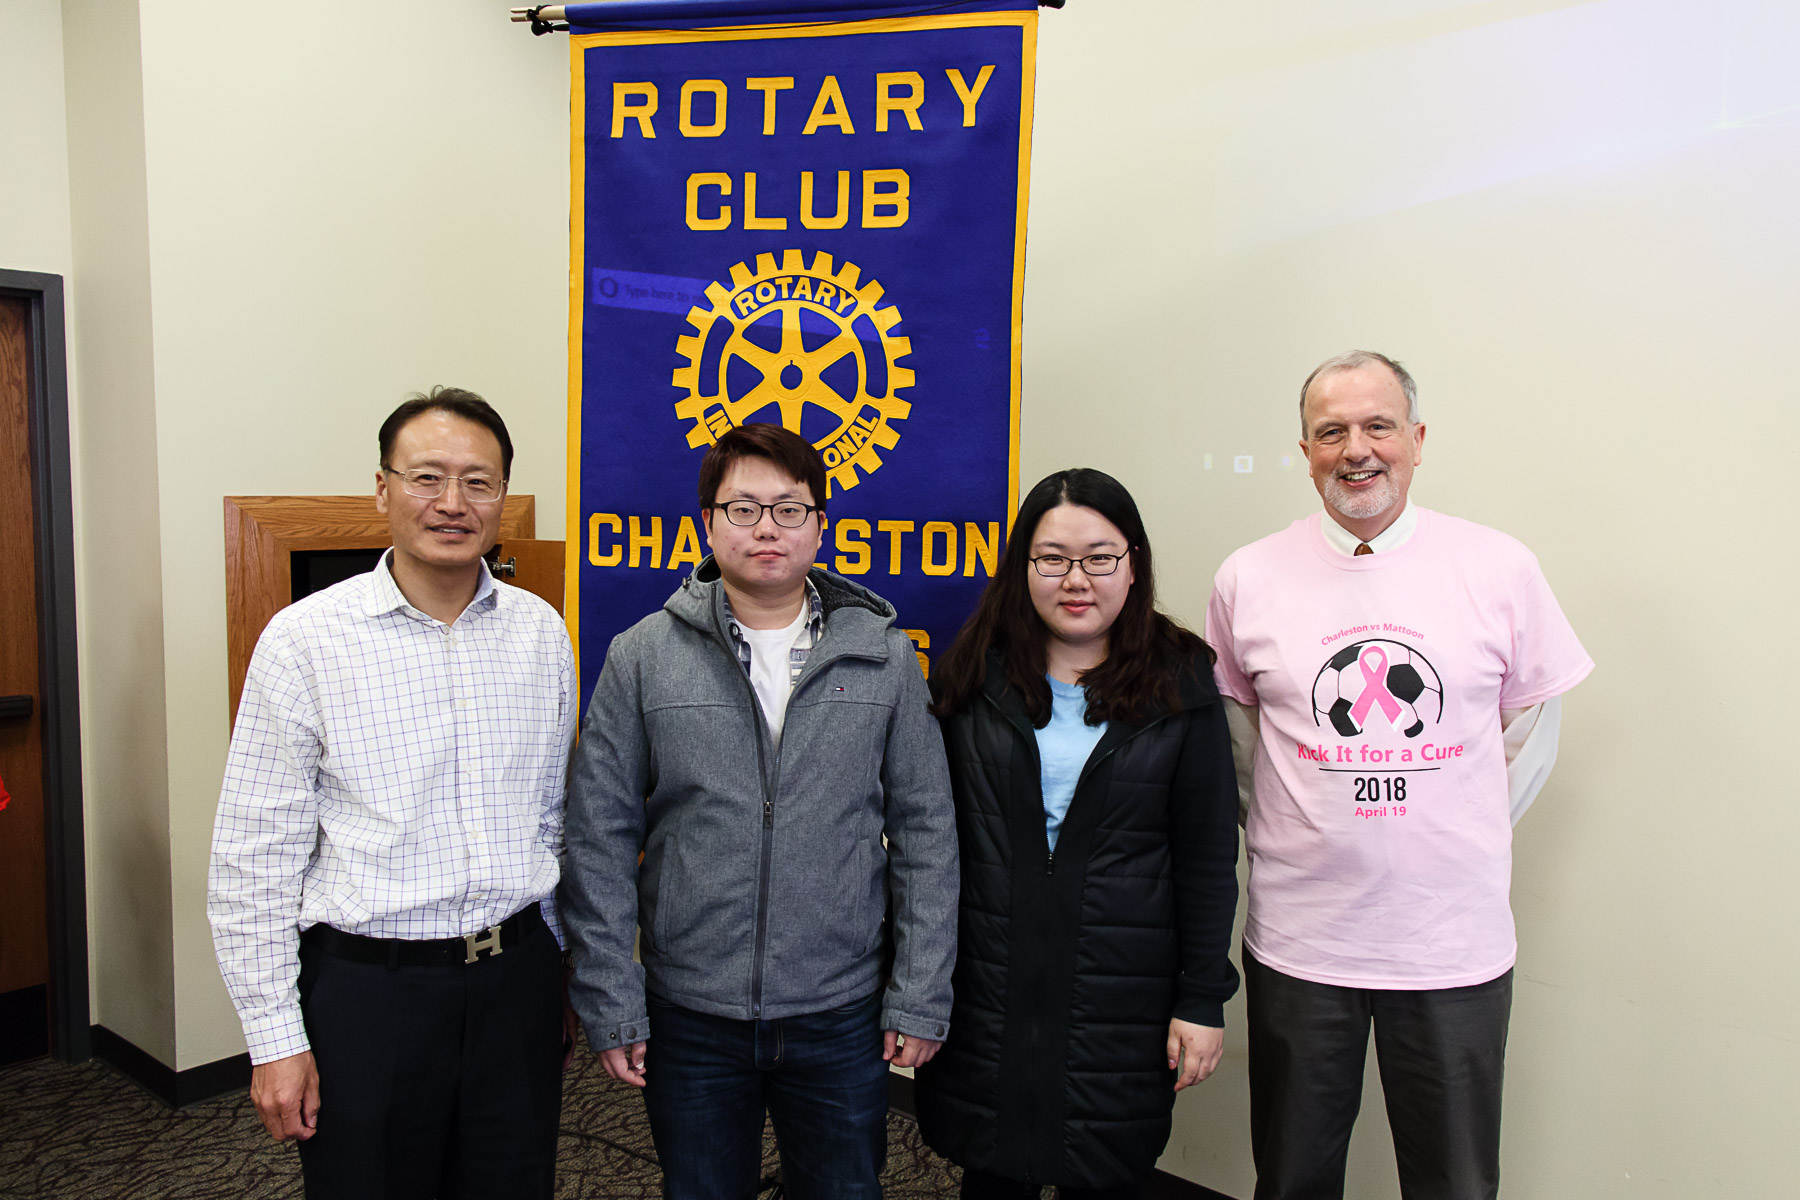 Lake Land College international students share experiences studying abroad with local rotary club